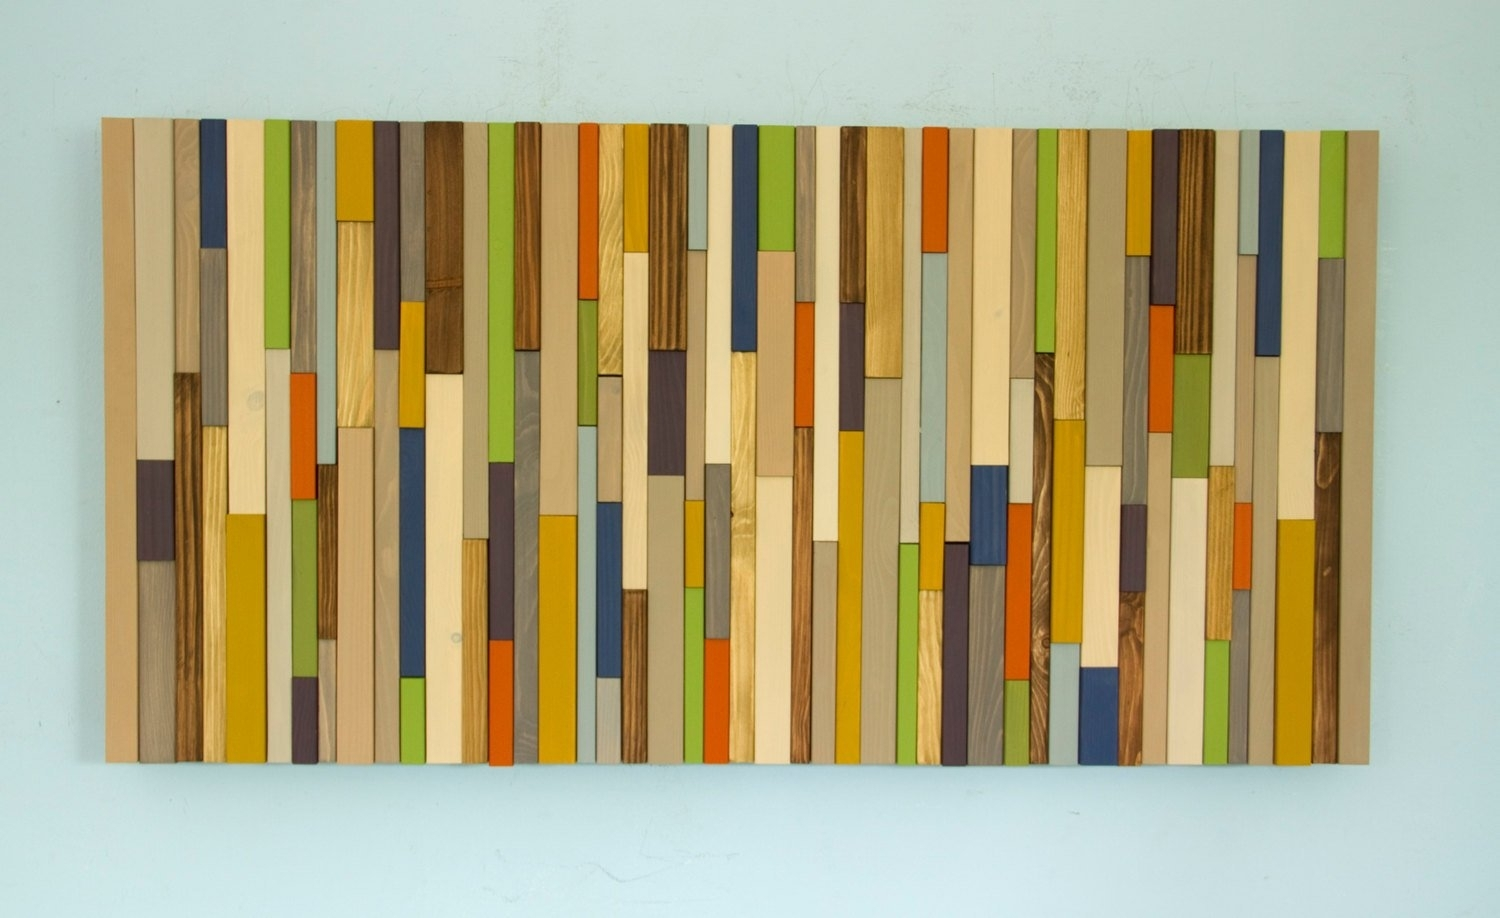 Wood Wall Art, Modern Wood Art, Reclaimed 3D Wood Sculpture, Mid Pertaining To 2018 Mid Century Wall Art (Gallery 14 of 20)